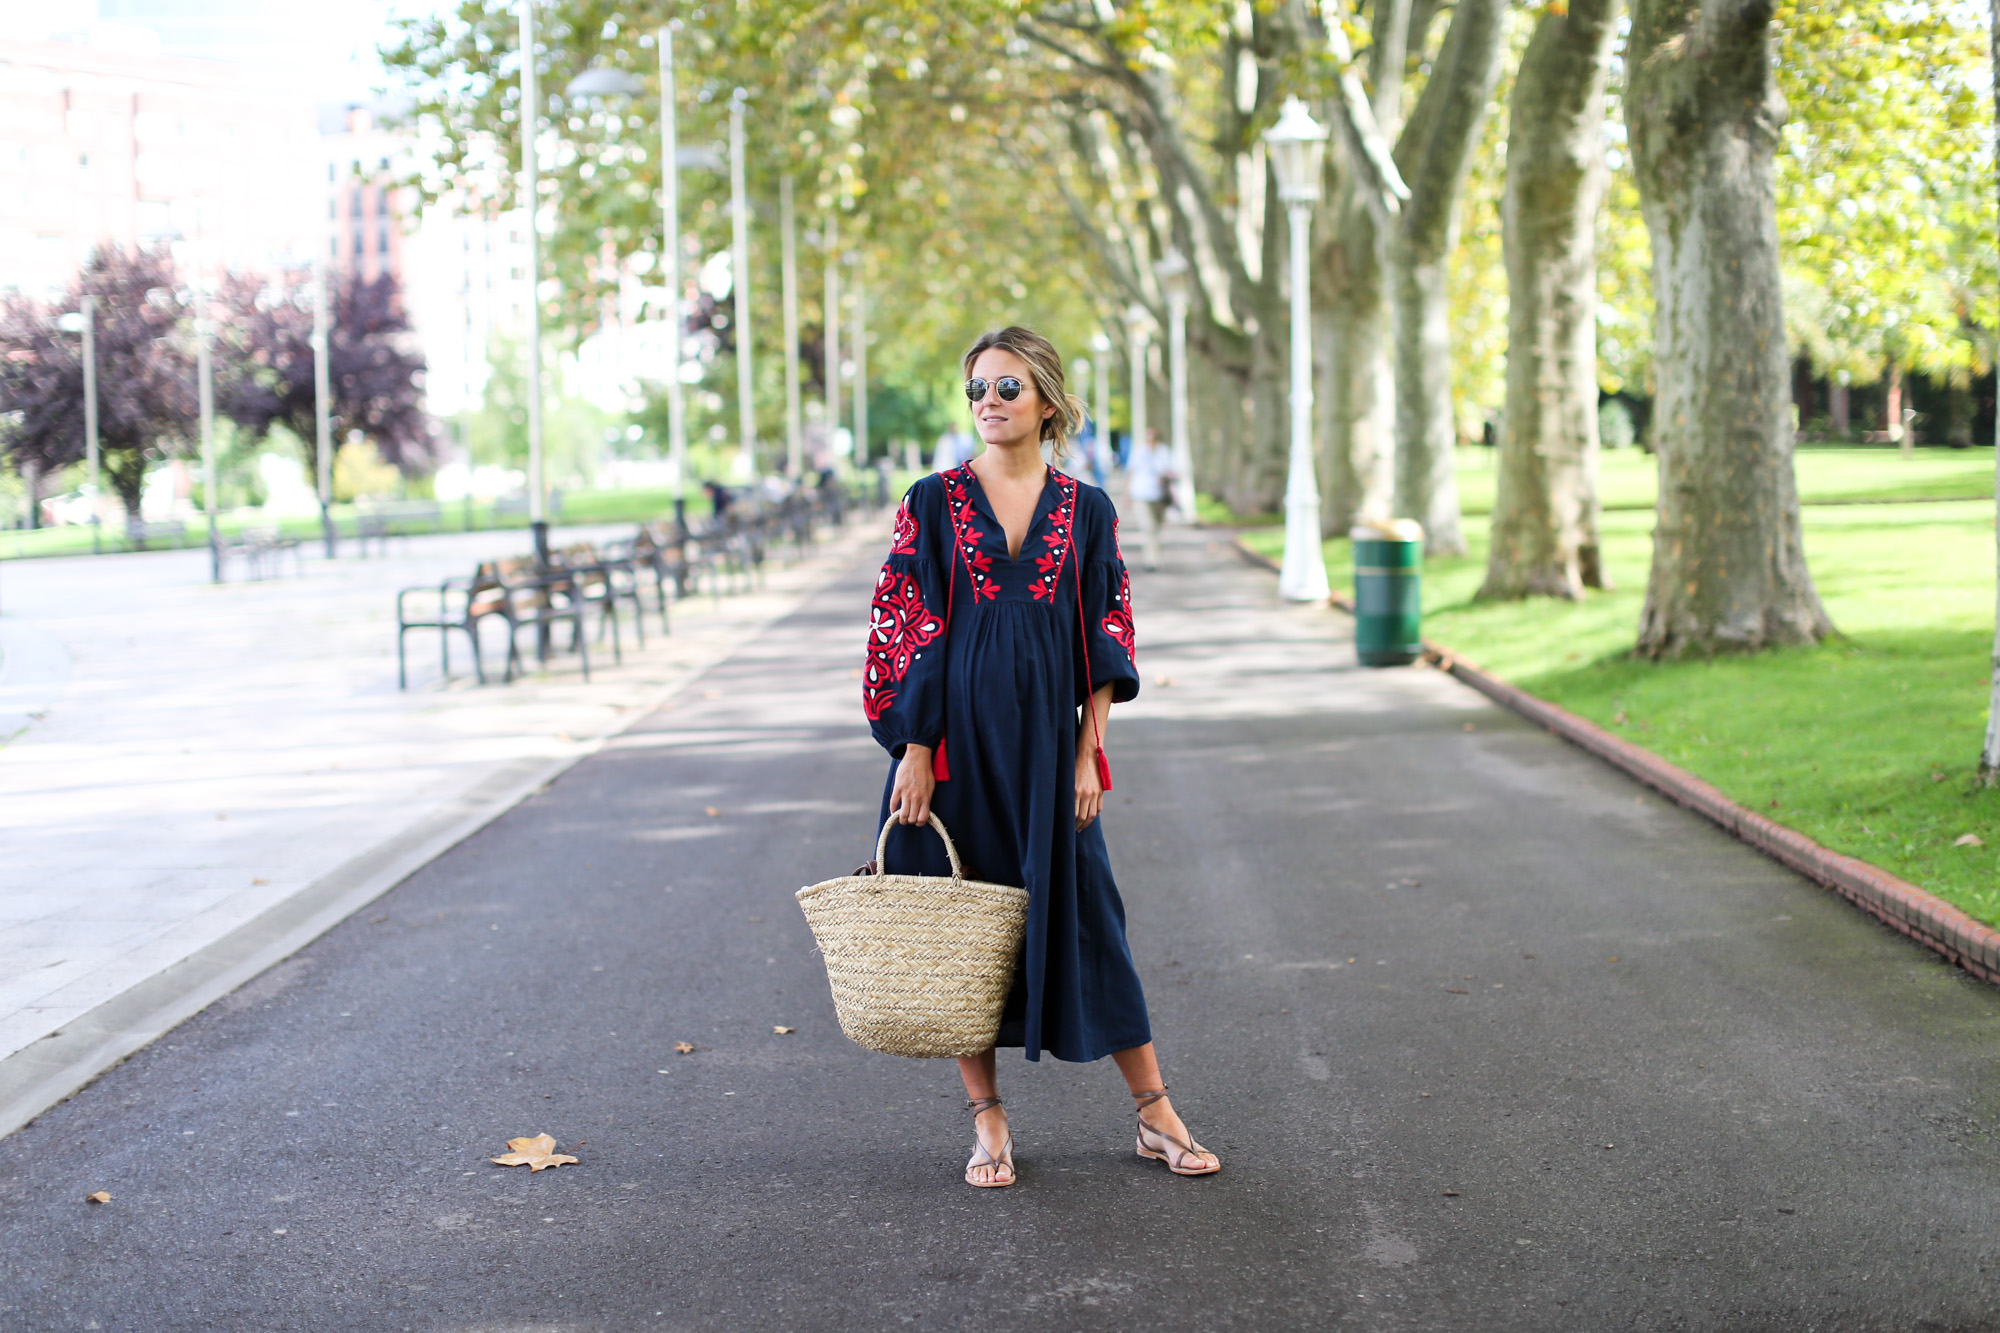 Clochet_streetstyle_fashionblogger_bilbao_zara_embroided_traditional_dress_strawbag